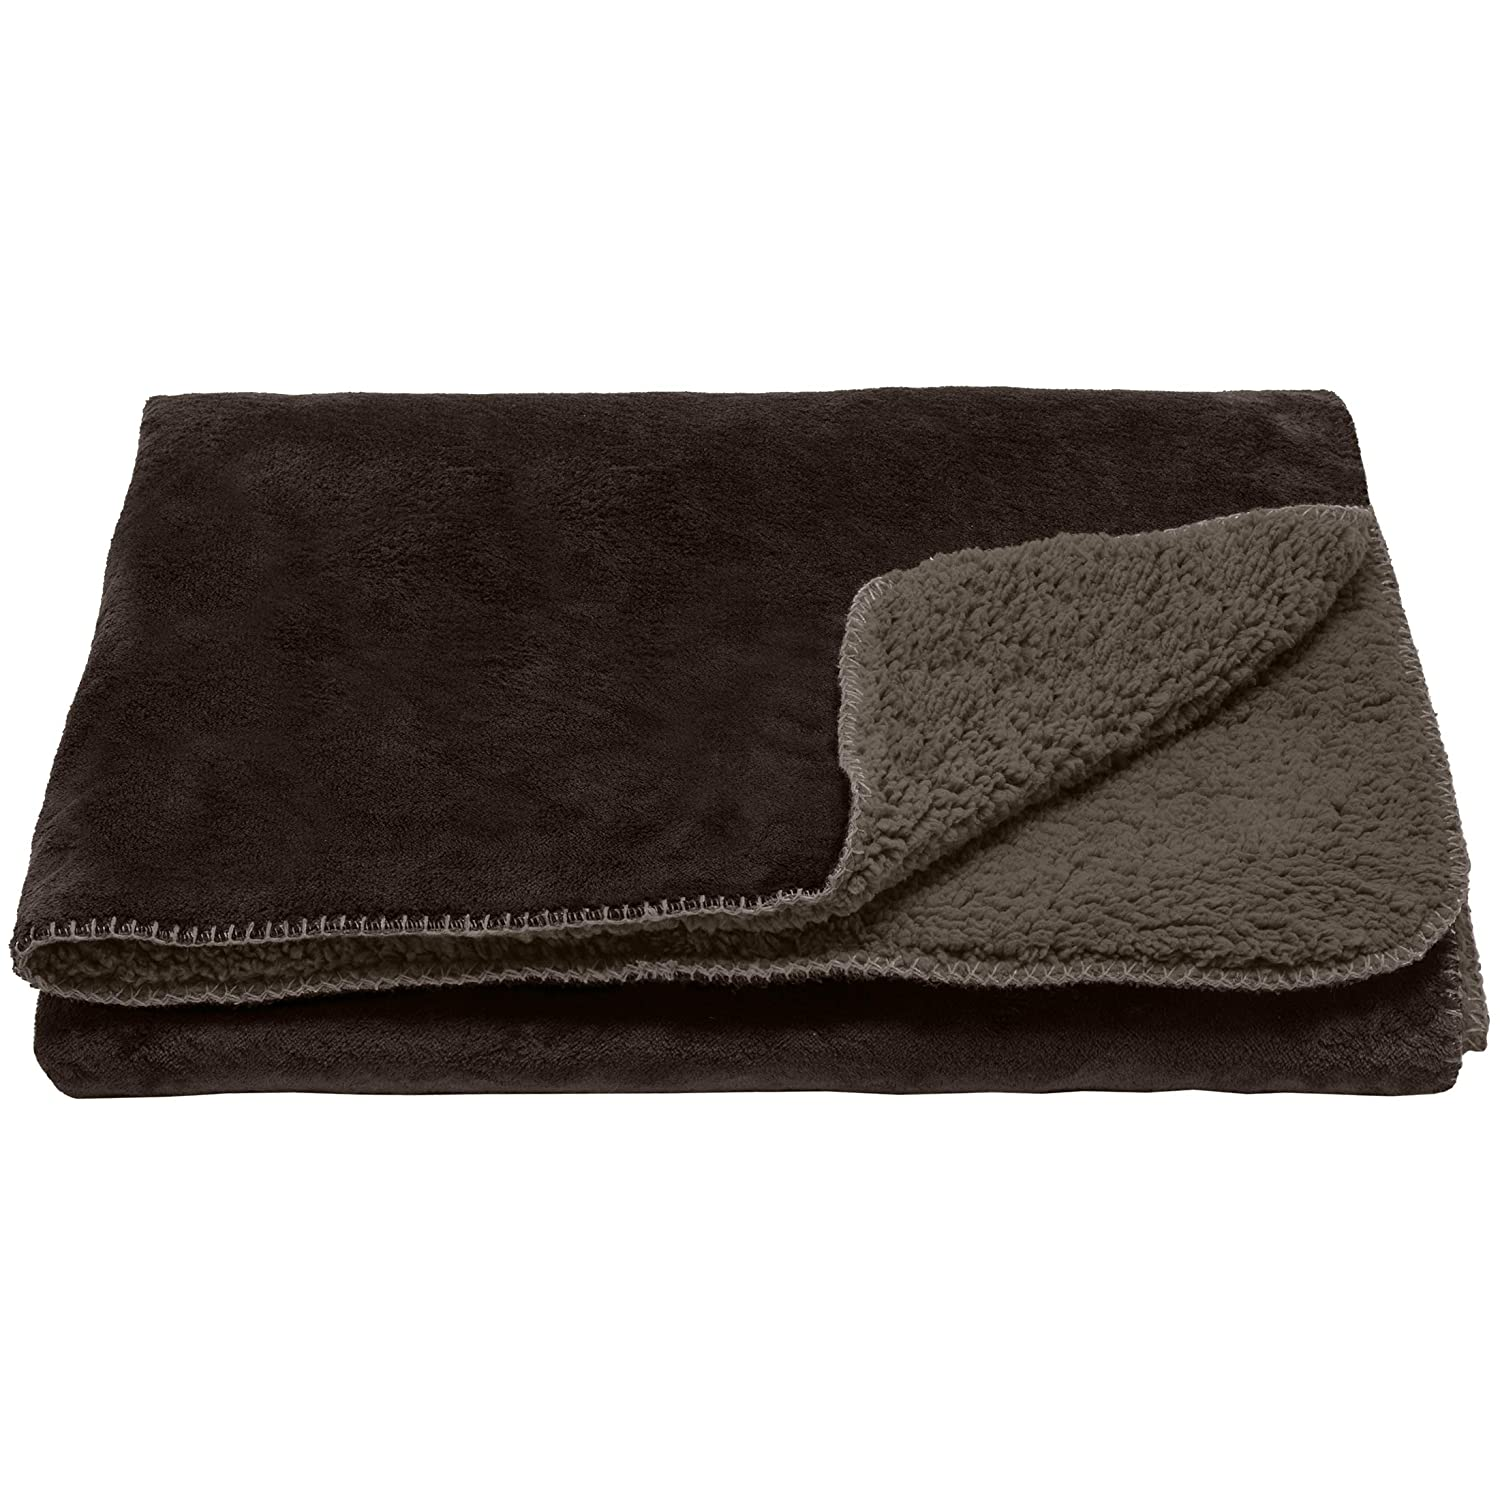 Furhaven Pet Dog Bed Mat /& Absorbent Chenille Bath Towel Rug for Dogs /& Cats Available in Multiple Styles /& Sizes Insulated Self-Warming Pet Bed Mat Water-Resistant Thermal Throw Blanket